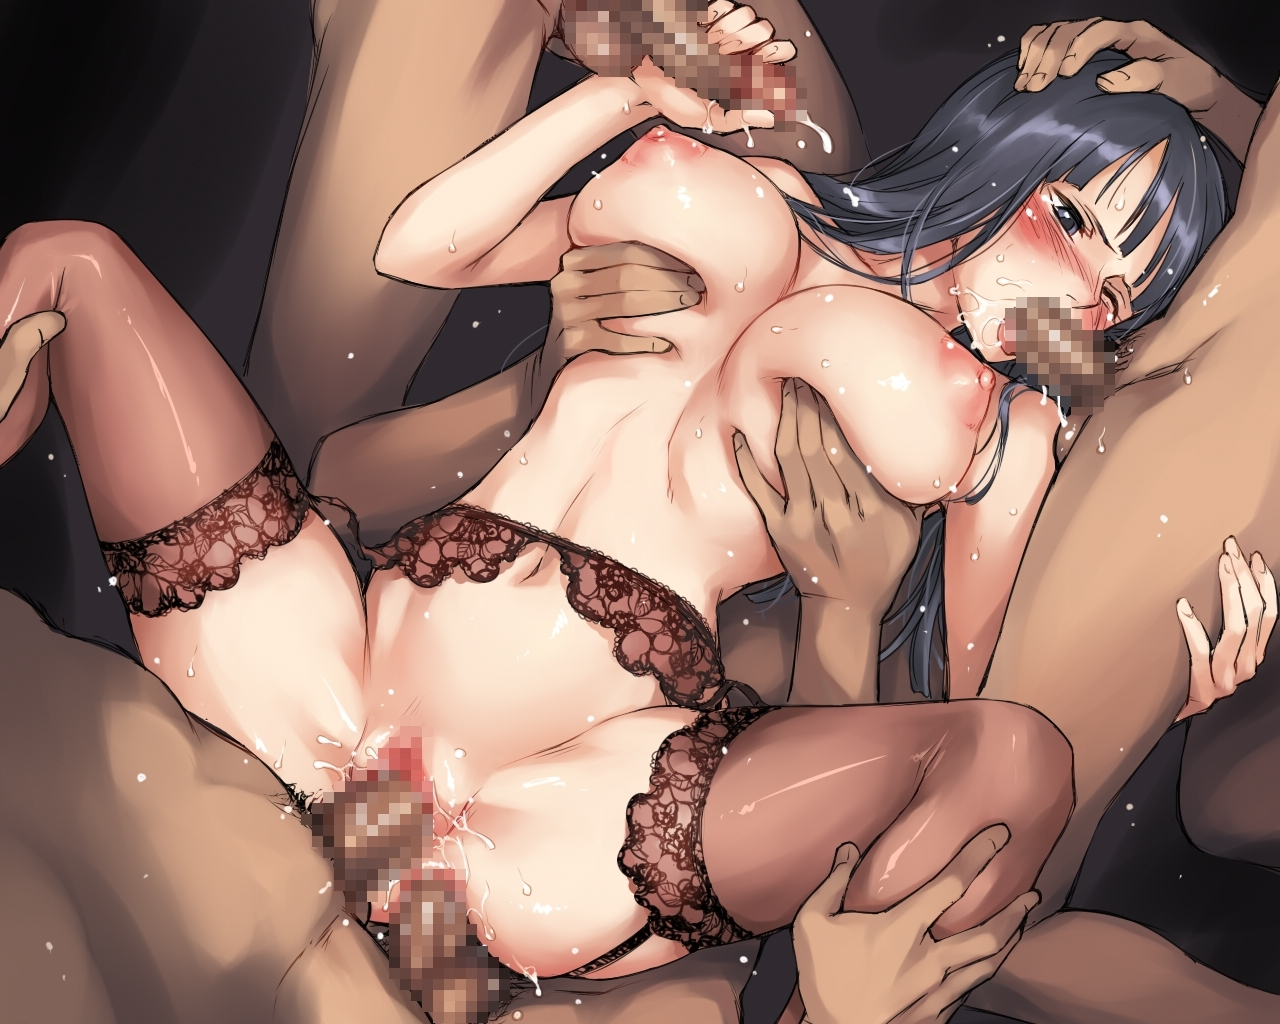 Toon sex pic ##00013037206 black hair breast grab breasts censored cum dark-skinned male dark penis double penetration ejaculation fellatio gangbang garter belt group sex hand on head handjob huge breasts interracial long hair male pubic hair mosaic censoring mosha multiple penises nico robin nude one piece oral penis pubic hair sex sweat thighhighs topless triple penetration